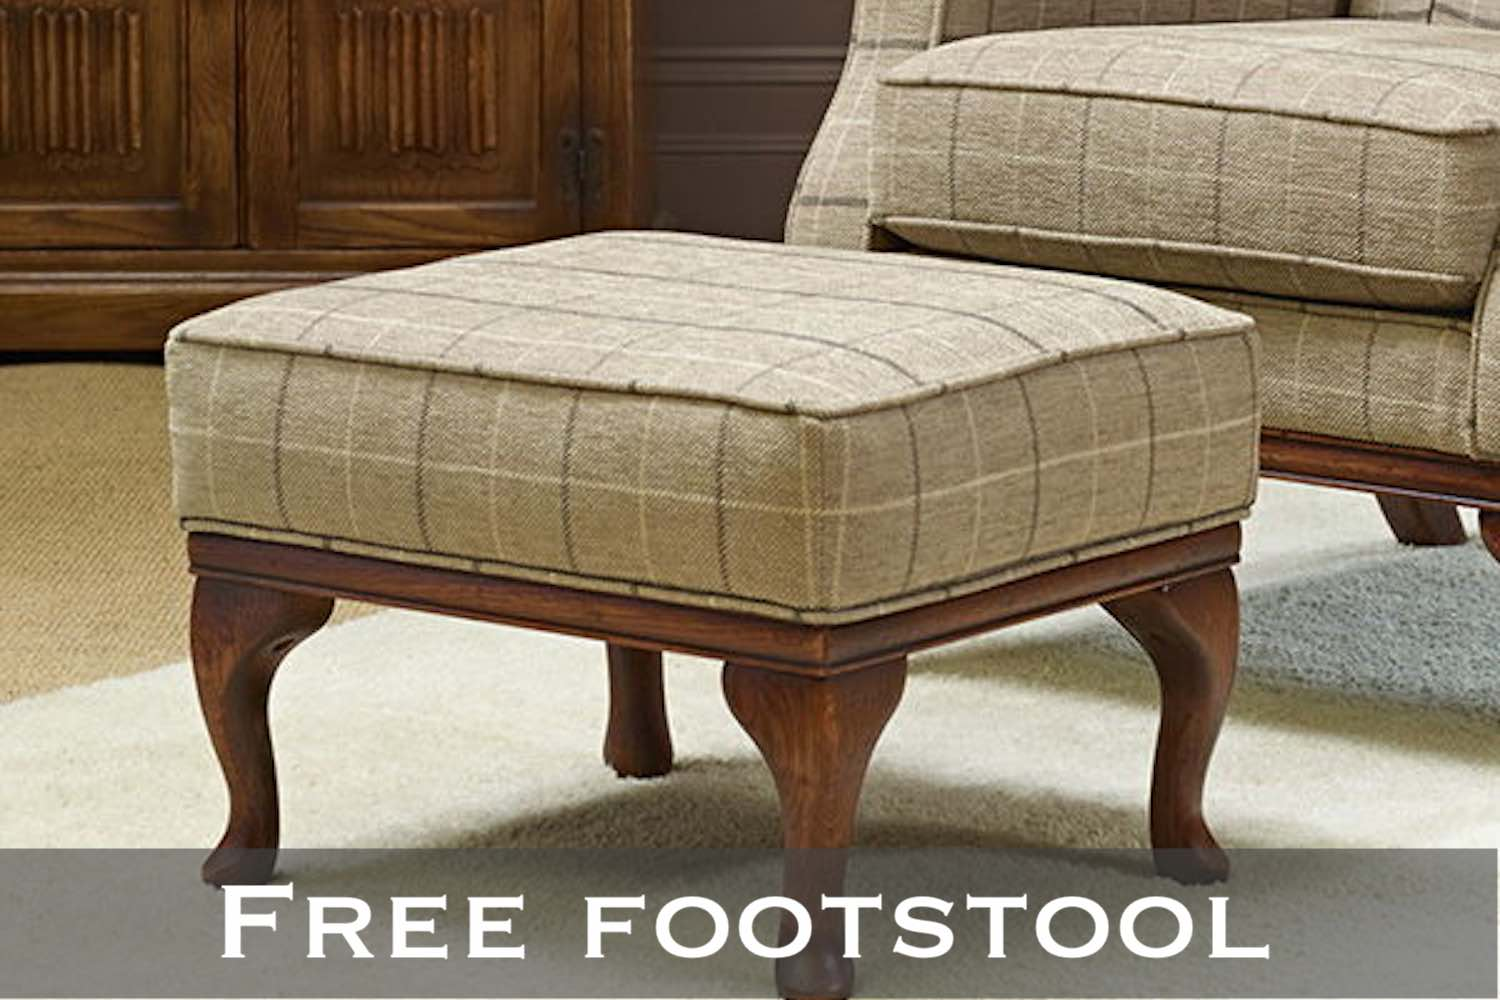 Wood Bros free footstool promotion